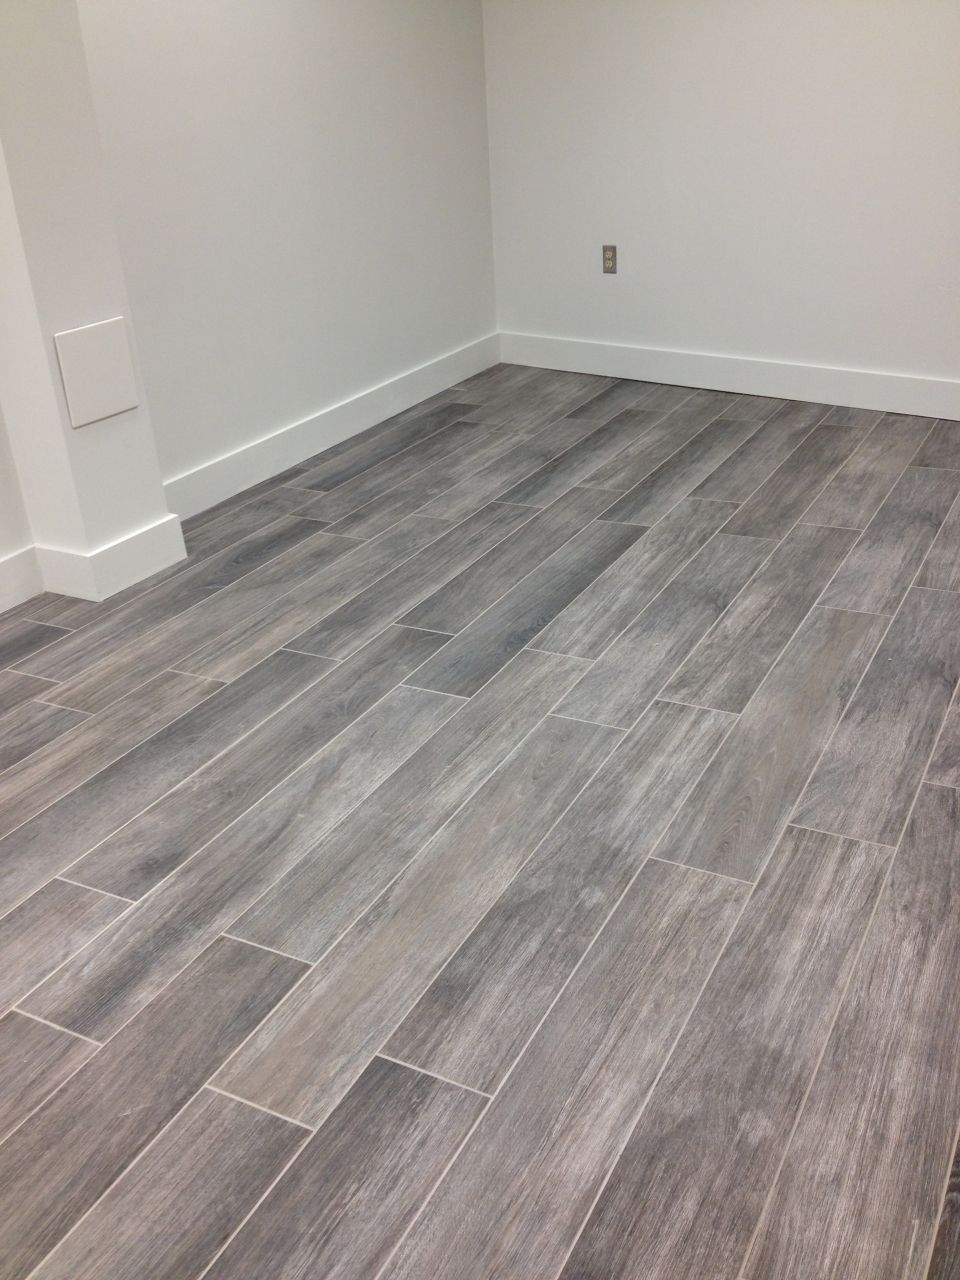 Gray wood tile floor no3lcd6n8 homes pinterest wood for Wooden floor tiles